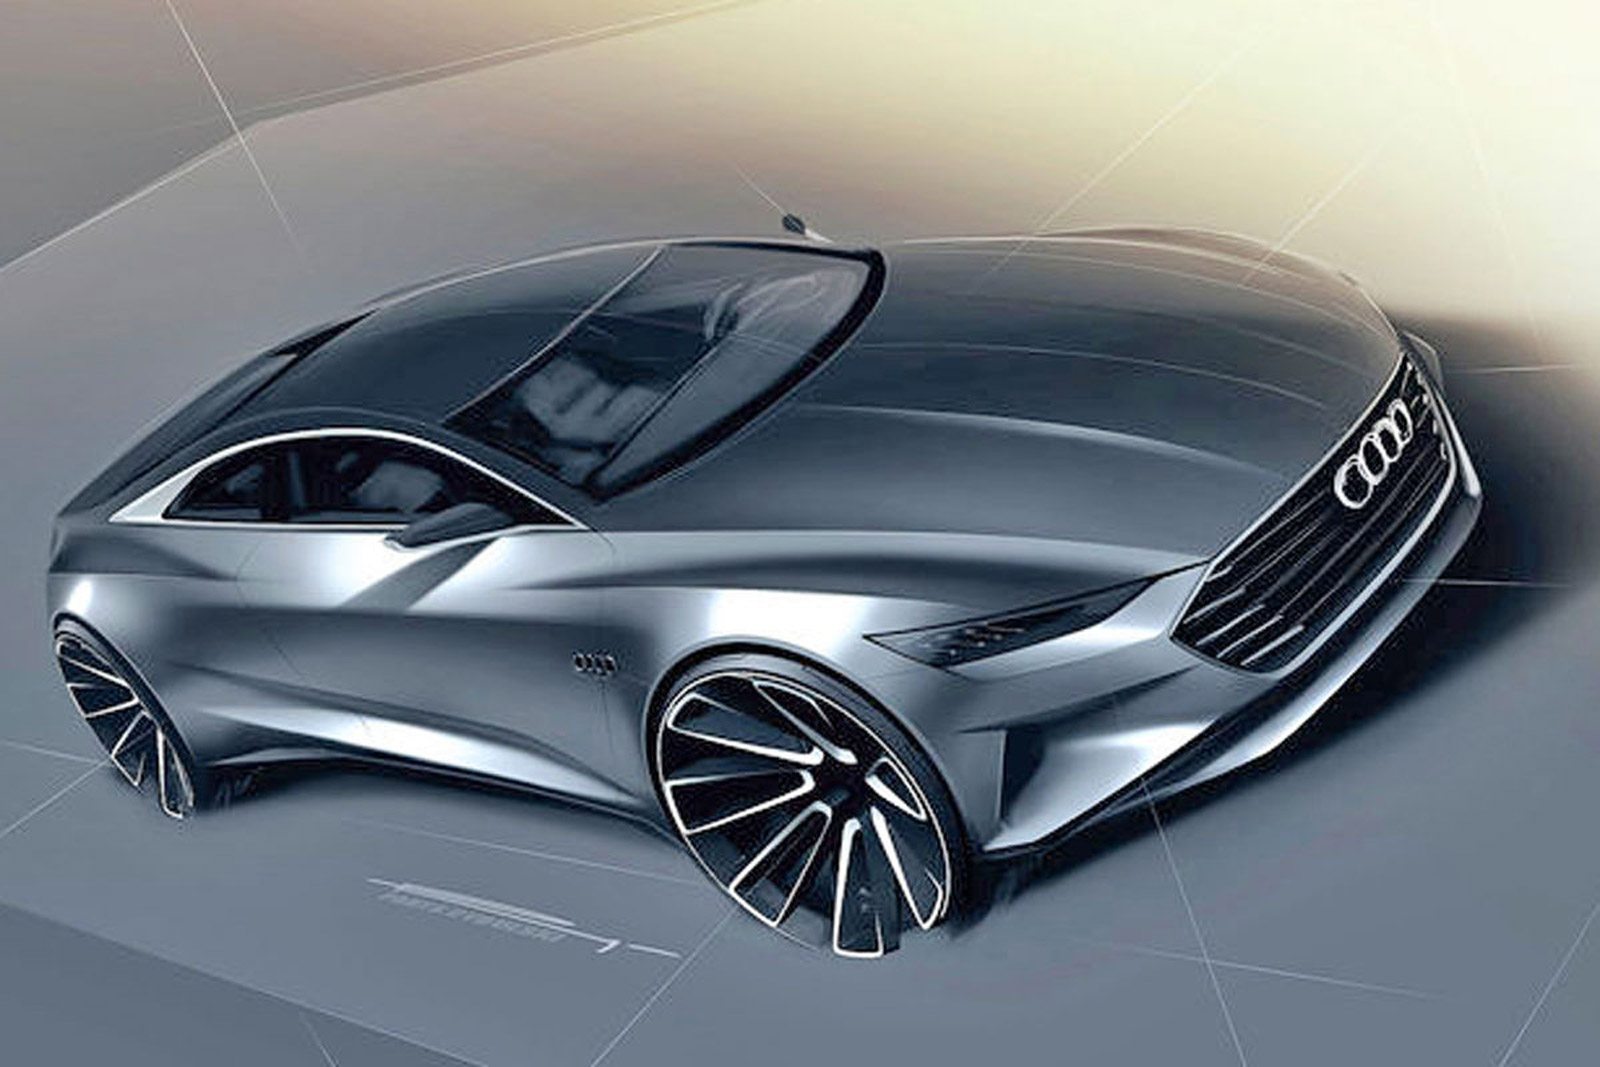 Audi Prologue Concept Teased In New Sketches Could